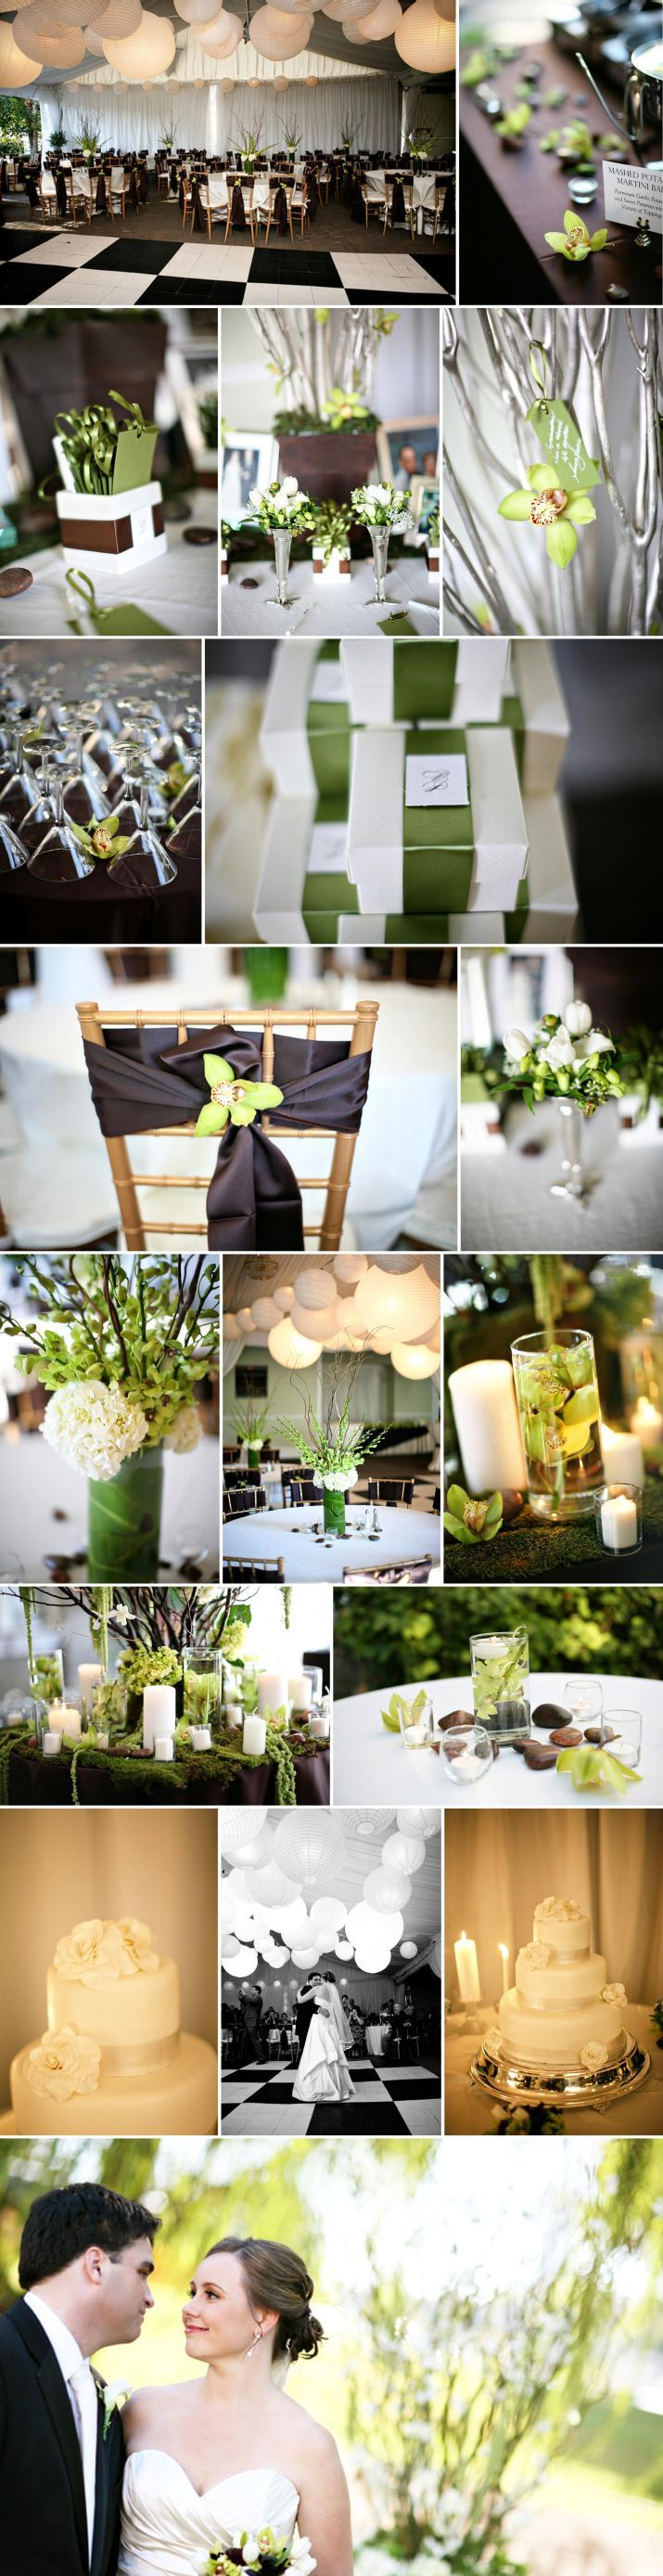 PatriciaJay part II Melissa Schollaert park tavern atlanta wedding green brown chair sashes orchids moss balloon ceiling